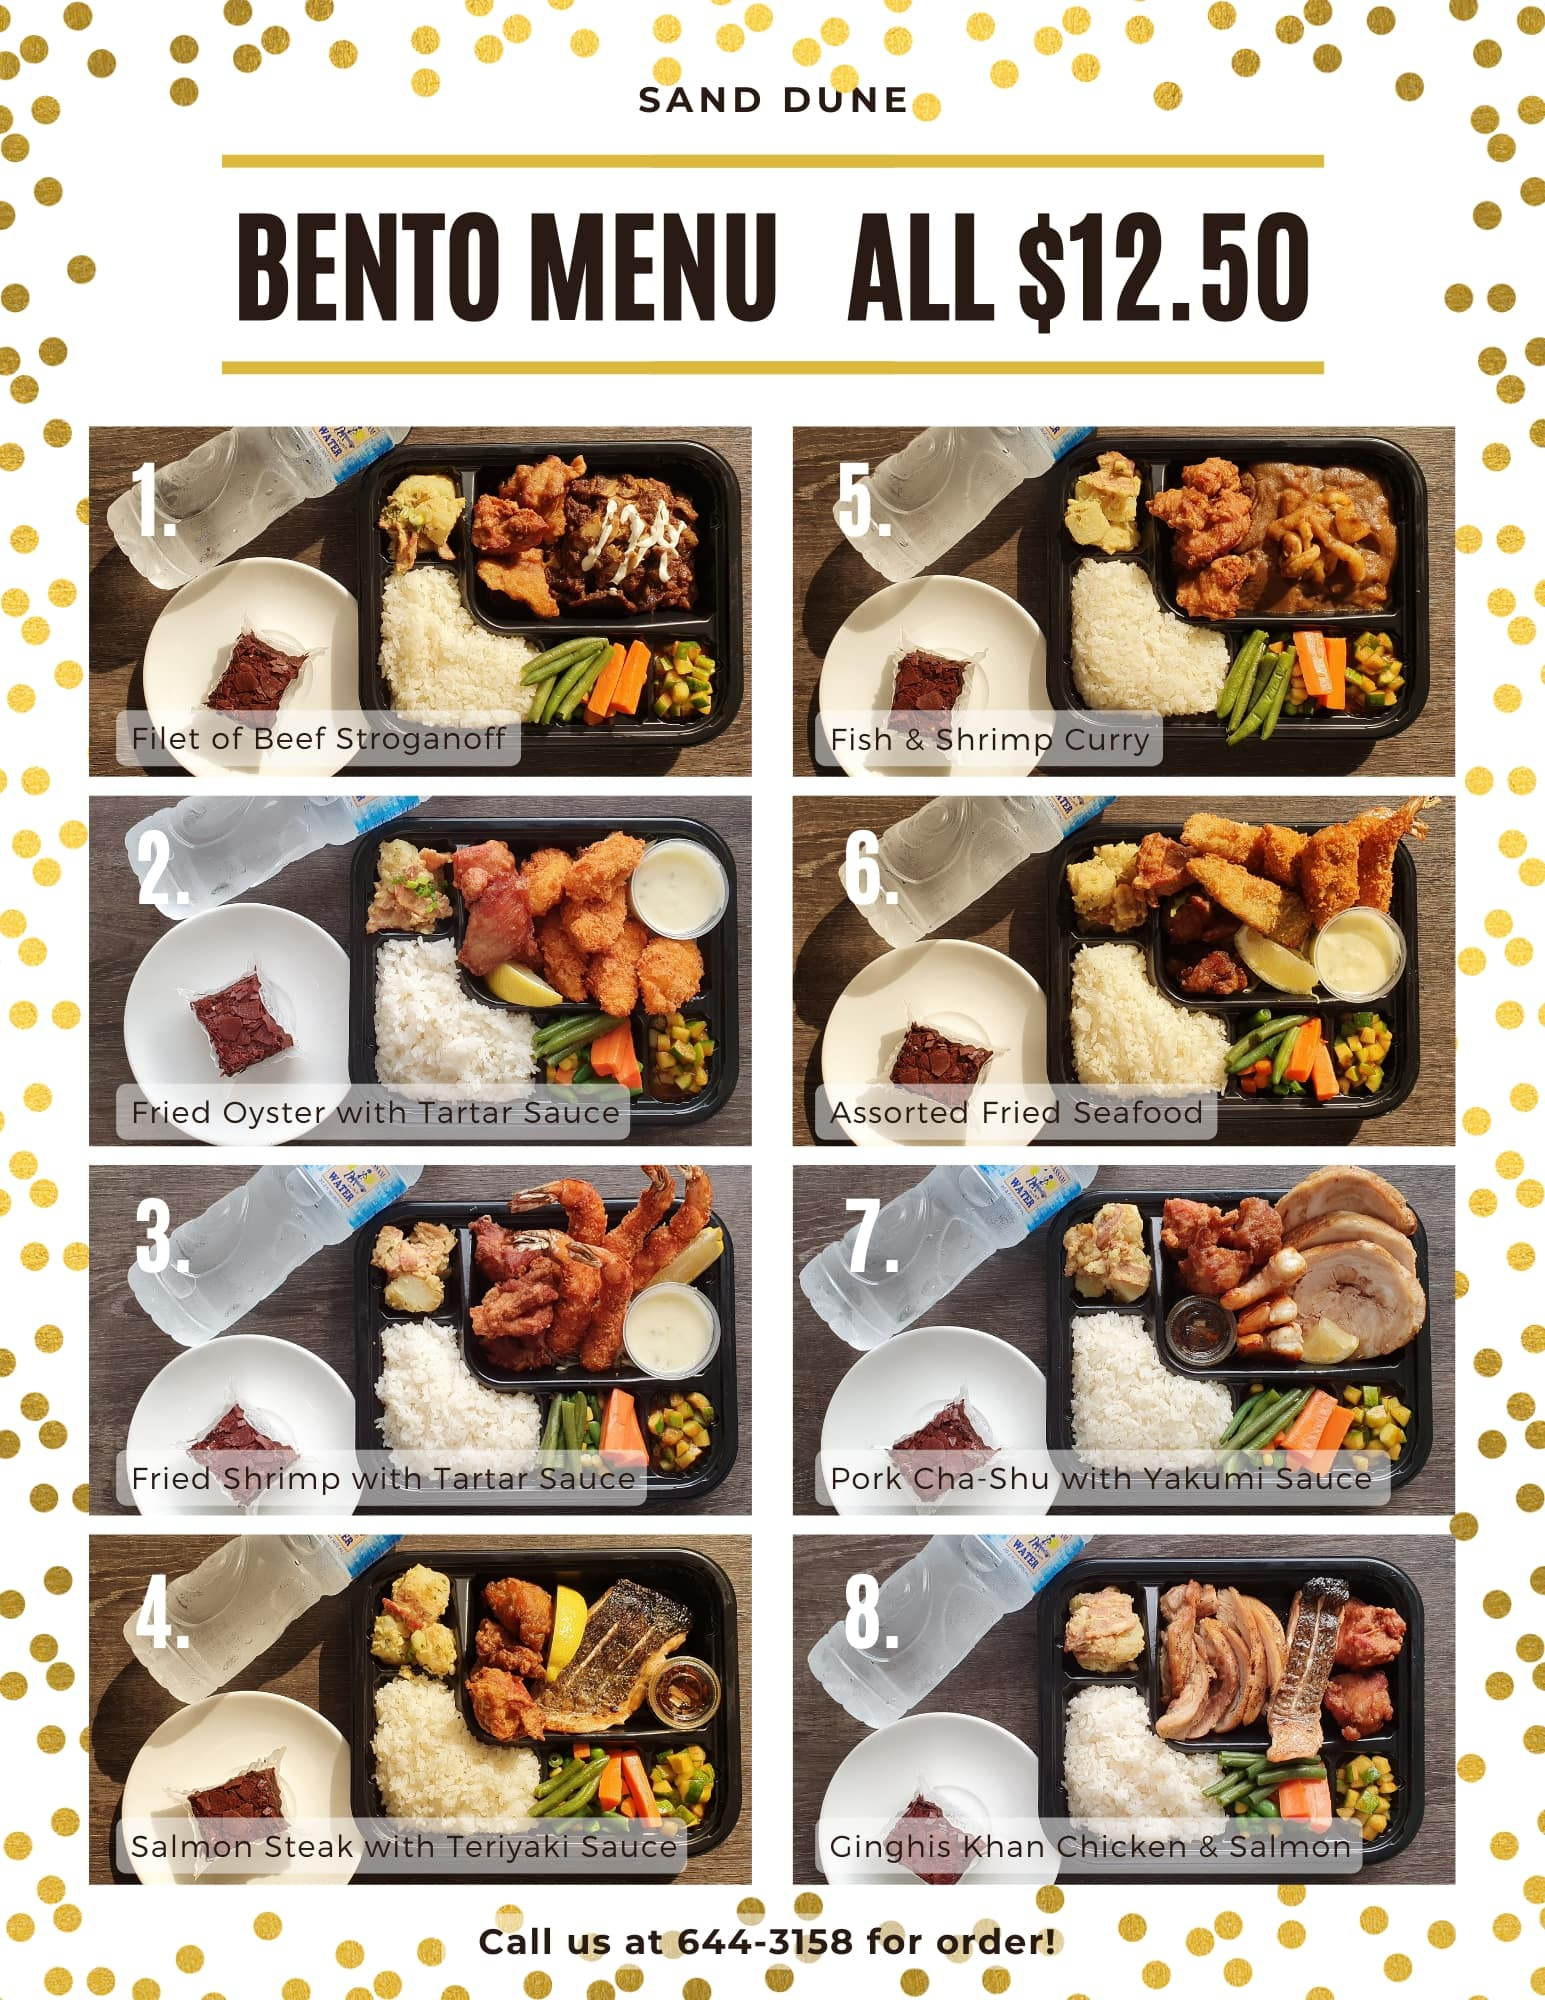 【Sand Dune】New Bento Box Menu